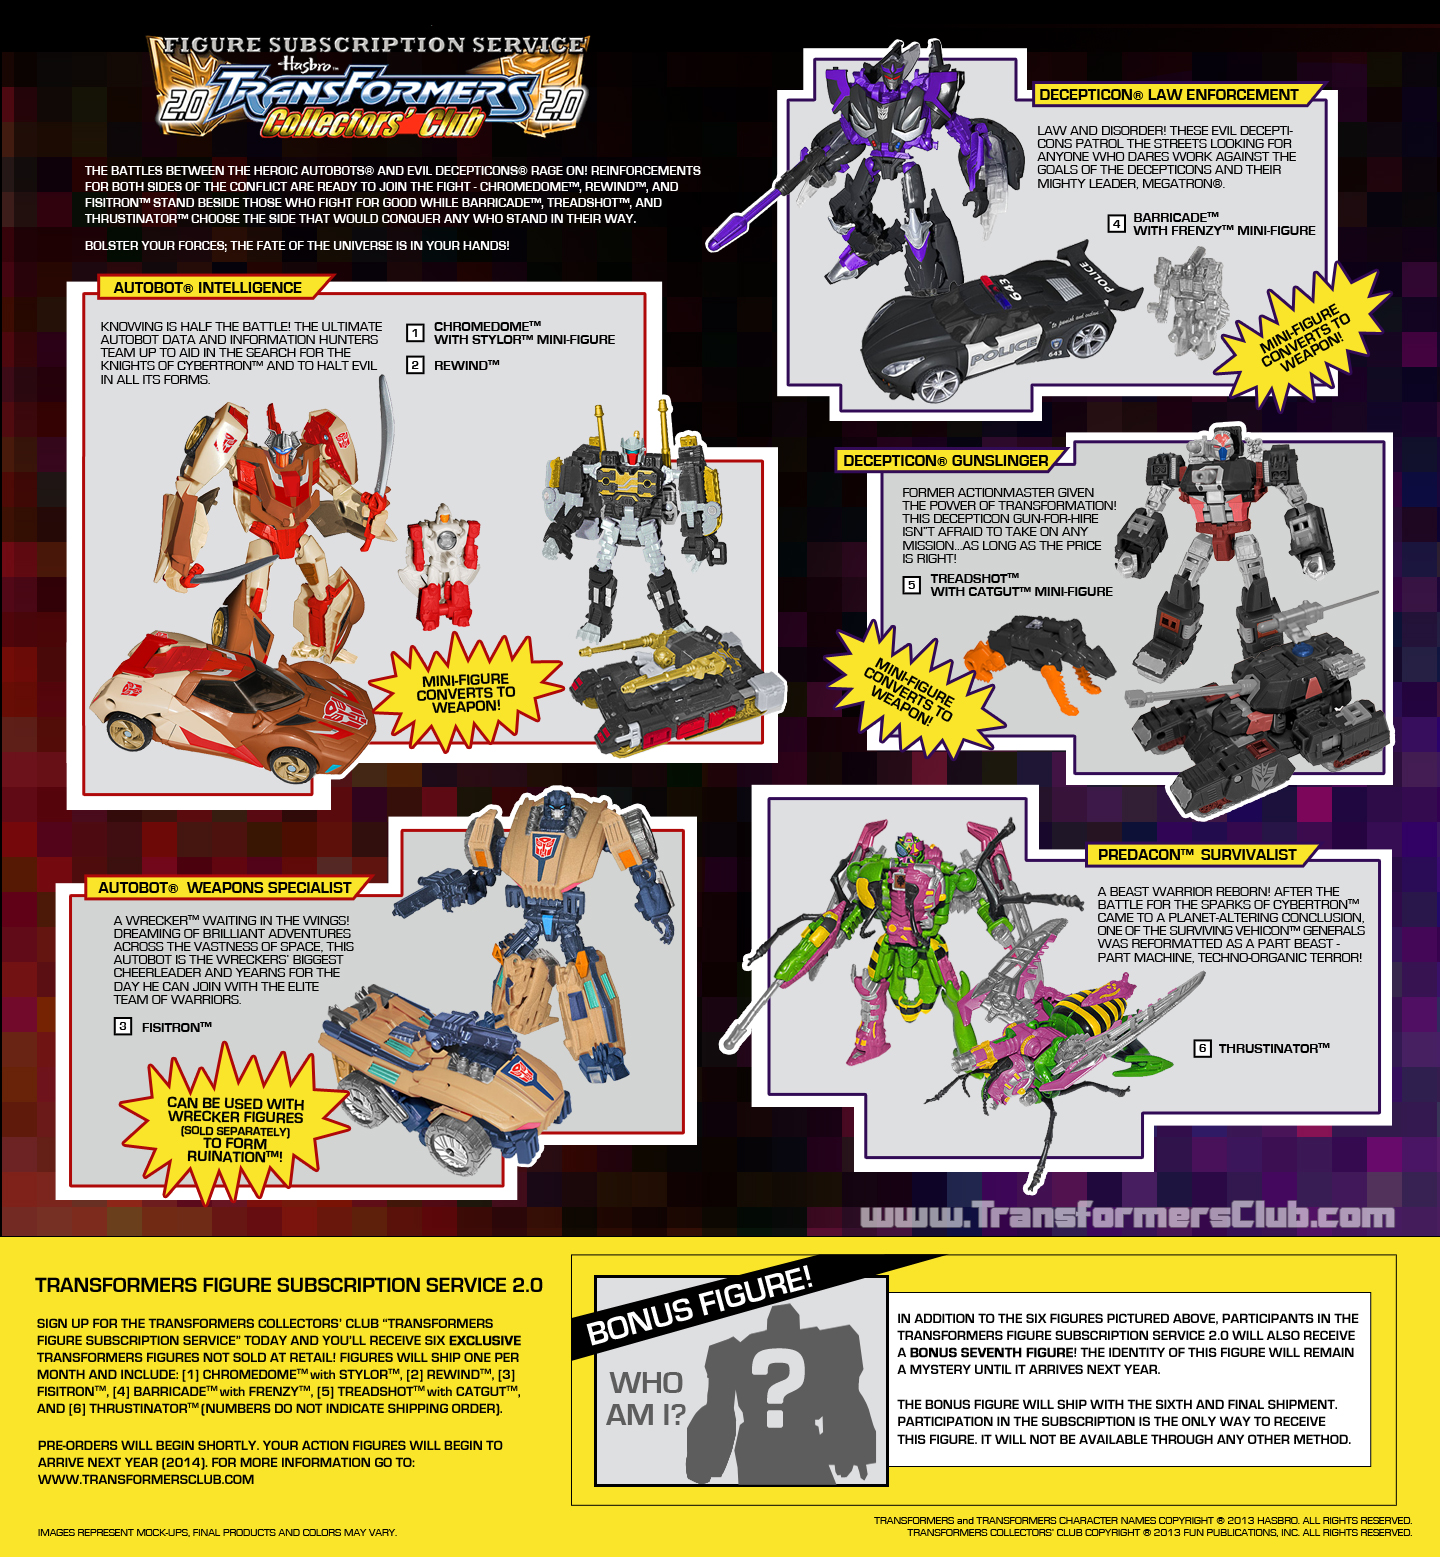 Jouets Transformers exclusifs: Collectors Club | TFSS - TF Subscription Service - Page 8 Tfss_ad_1380224380